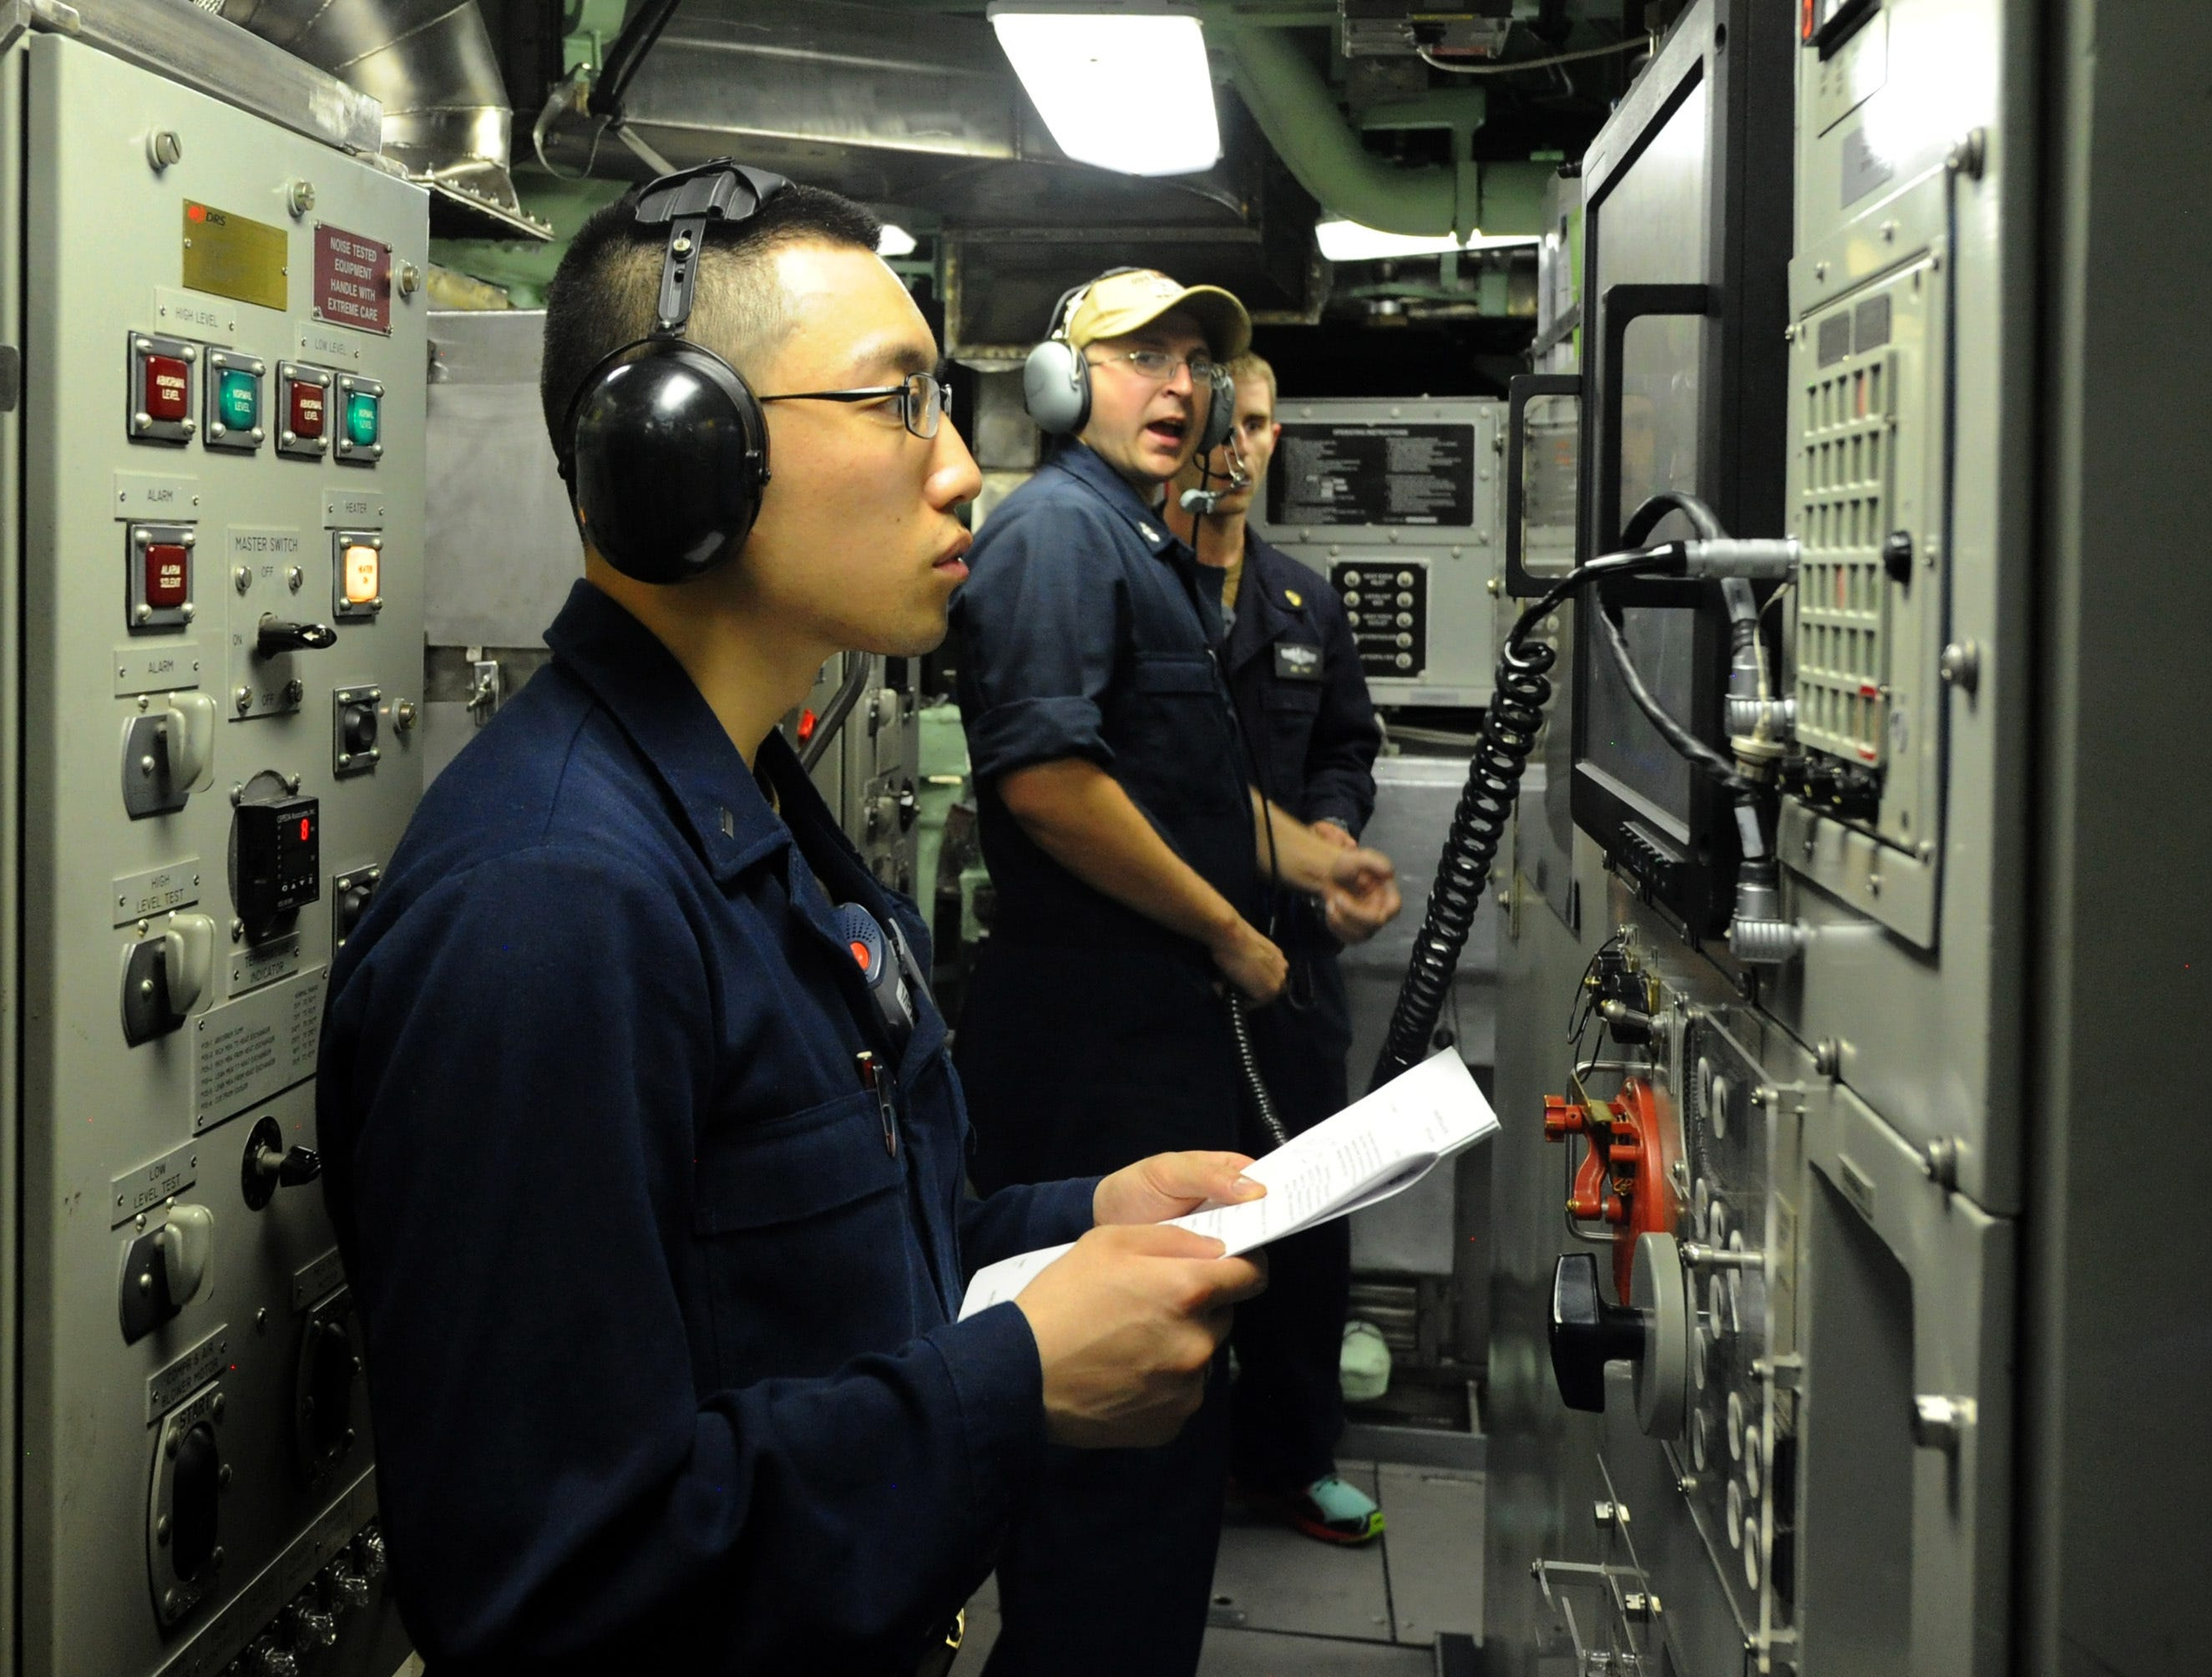 Lt. j.g. Leslie Liang performs normal diesel operation checks, verifying pressure, temperature and the operational status of the diesel engines aboard Pre-Commissioning Unit Indiana (SSN 789), June 23, 2018. Indiana is the 16th Virginia-class fast attack submarine and is scheduled to be commissioned Sept. 29, 2018. (U.S. Navy photo by Chief Mass Communication Specialist Darryl Wood/Released)